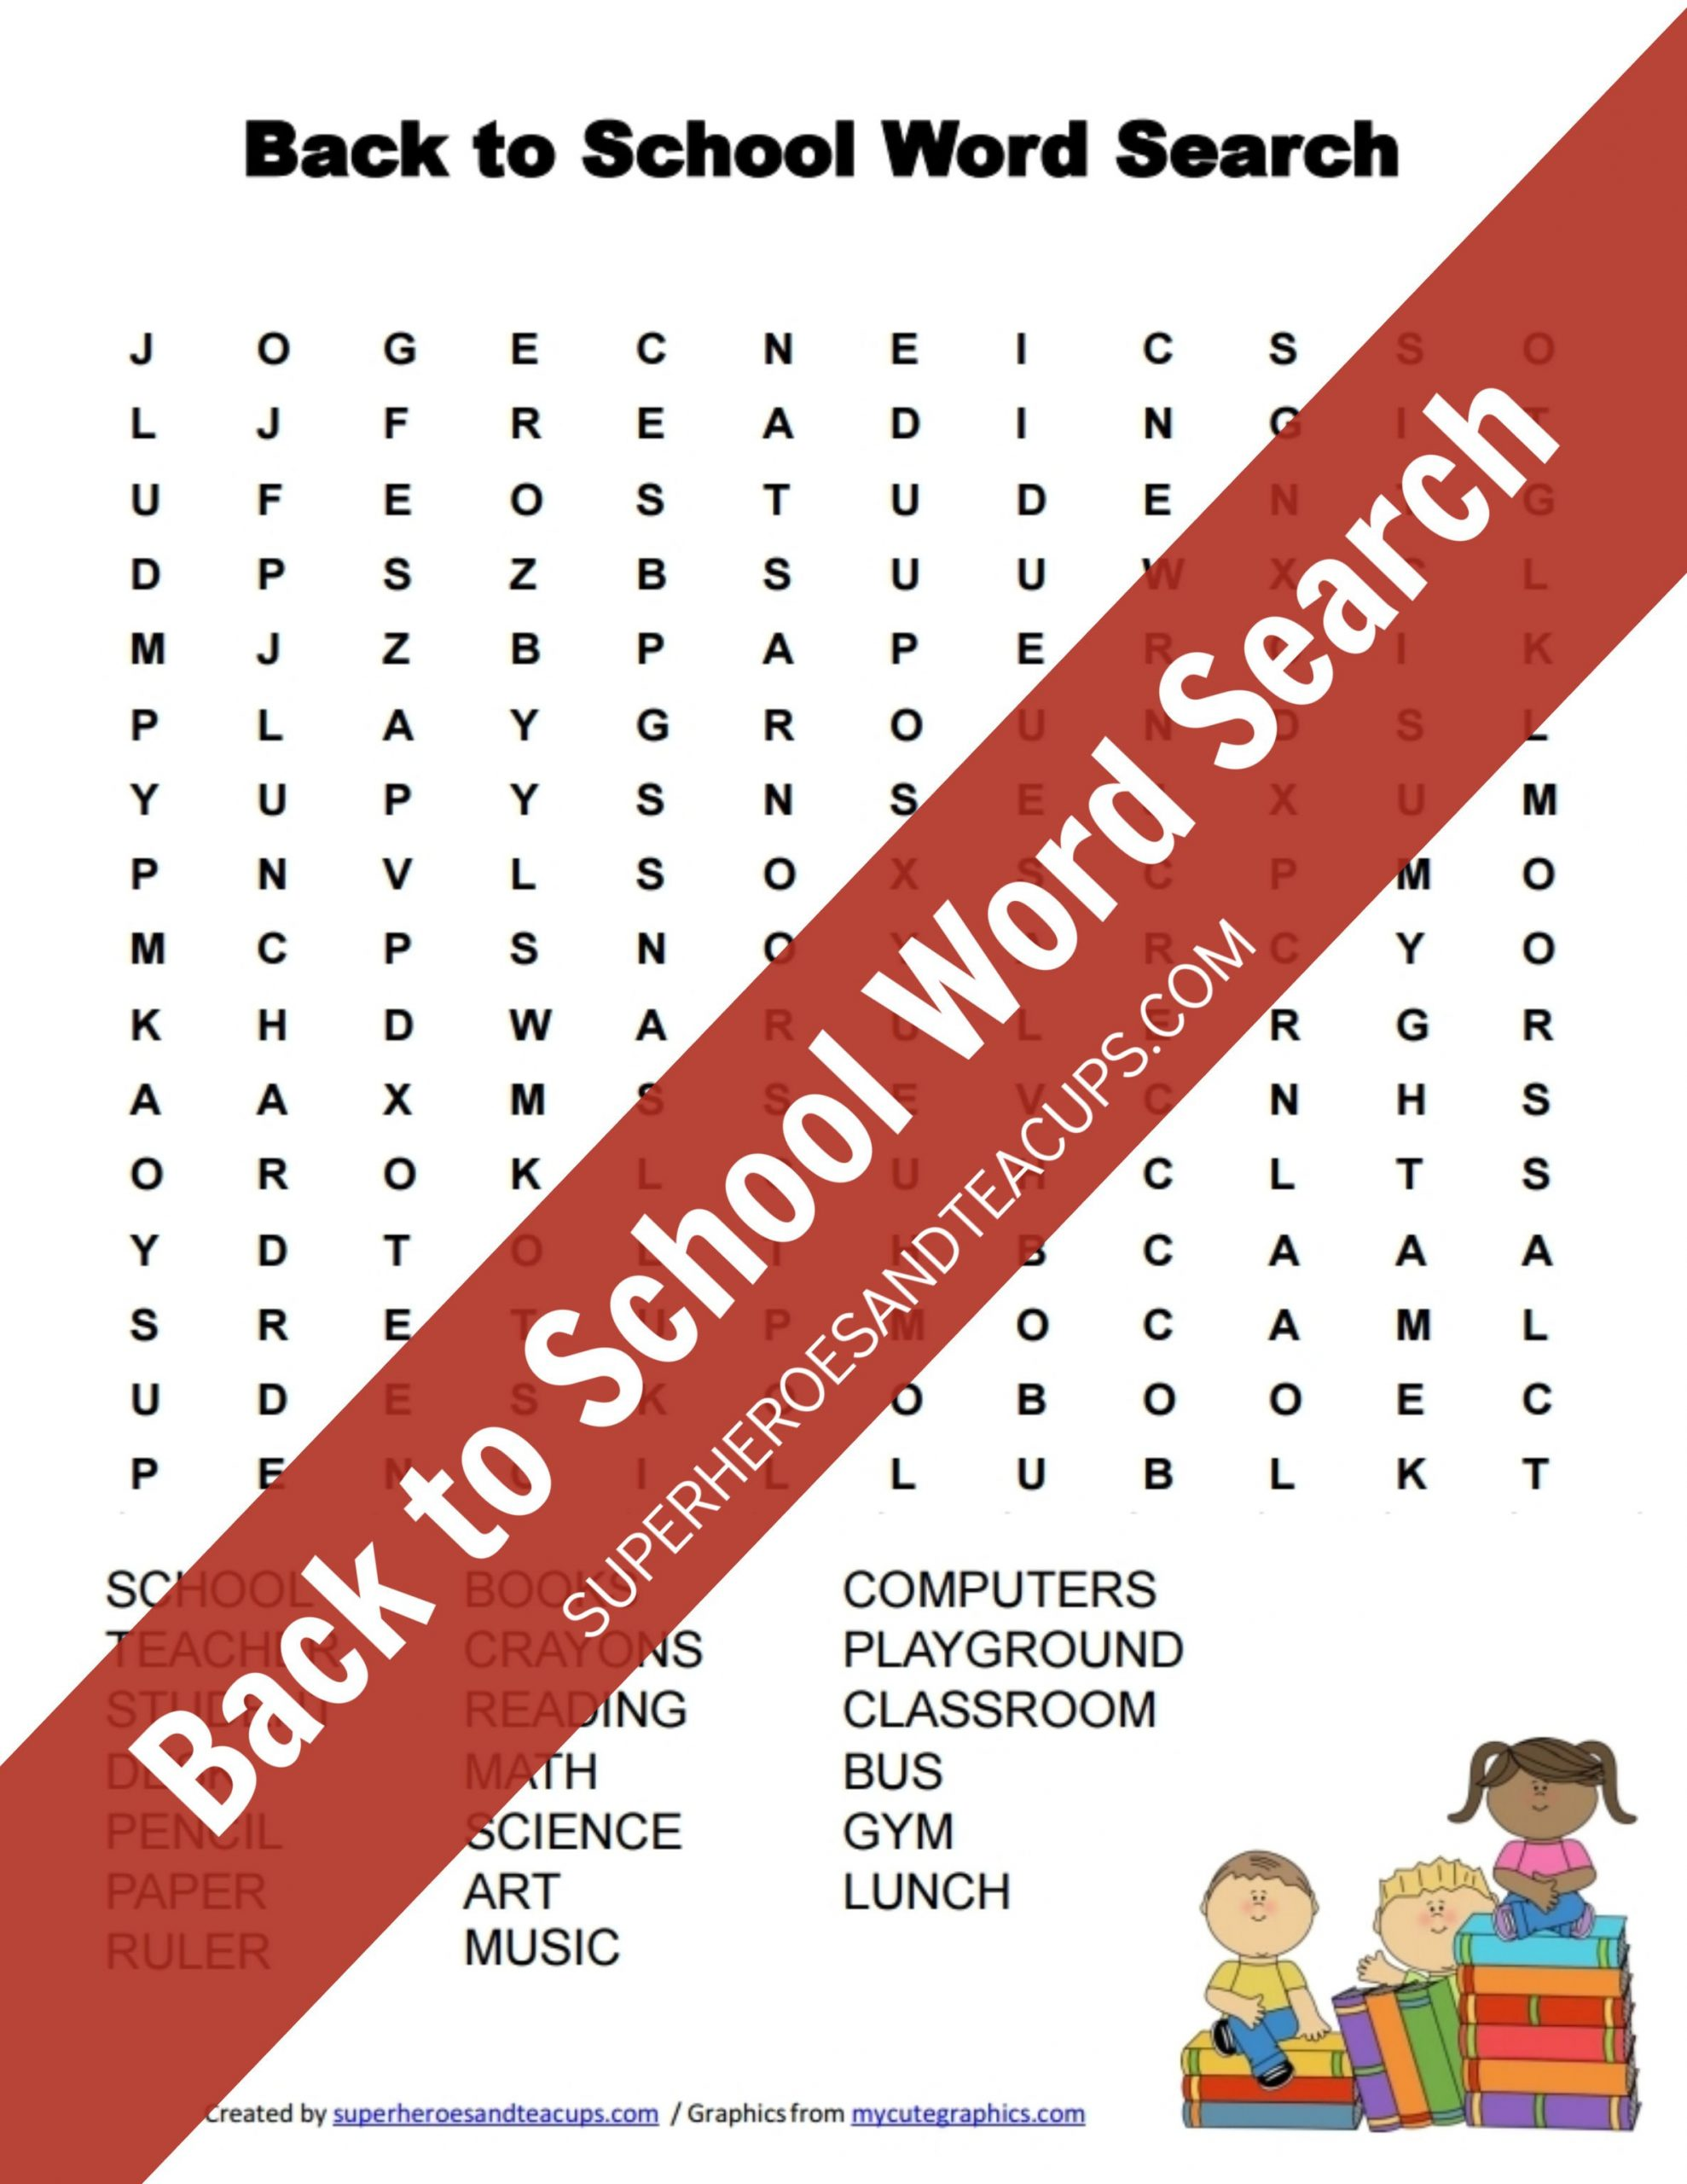 Back To School Word Search Free Printable | Superheroes And